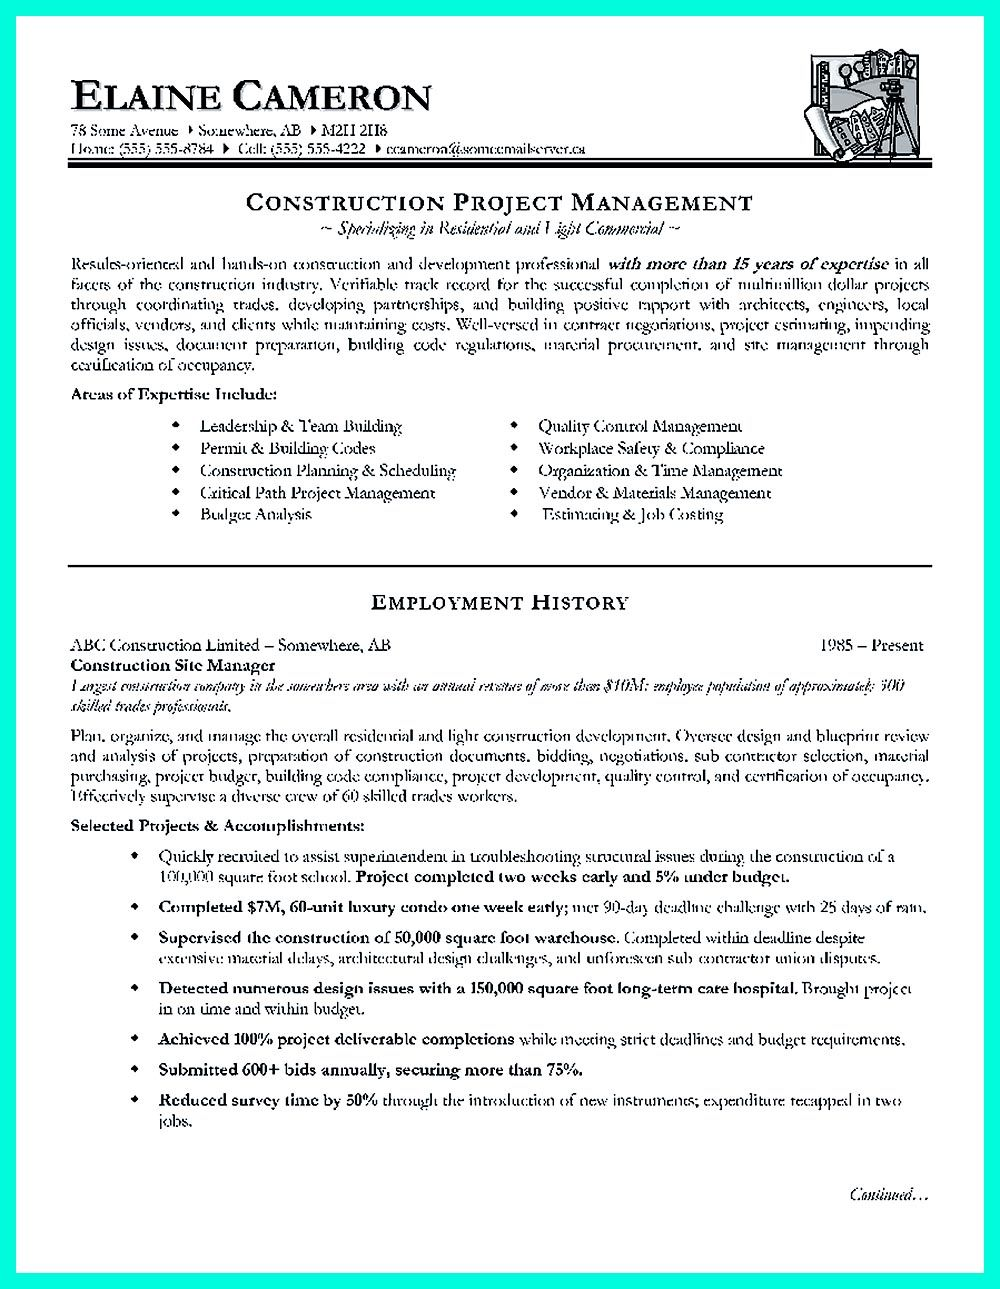 Construction Management Resume Is Designed For A Professional Who